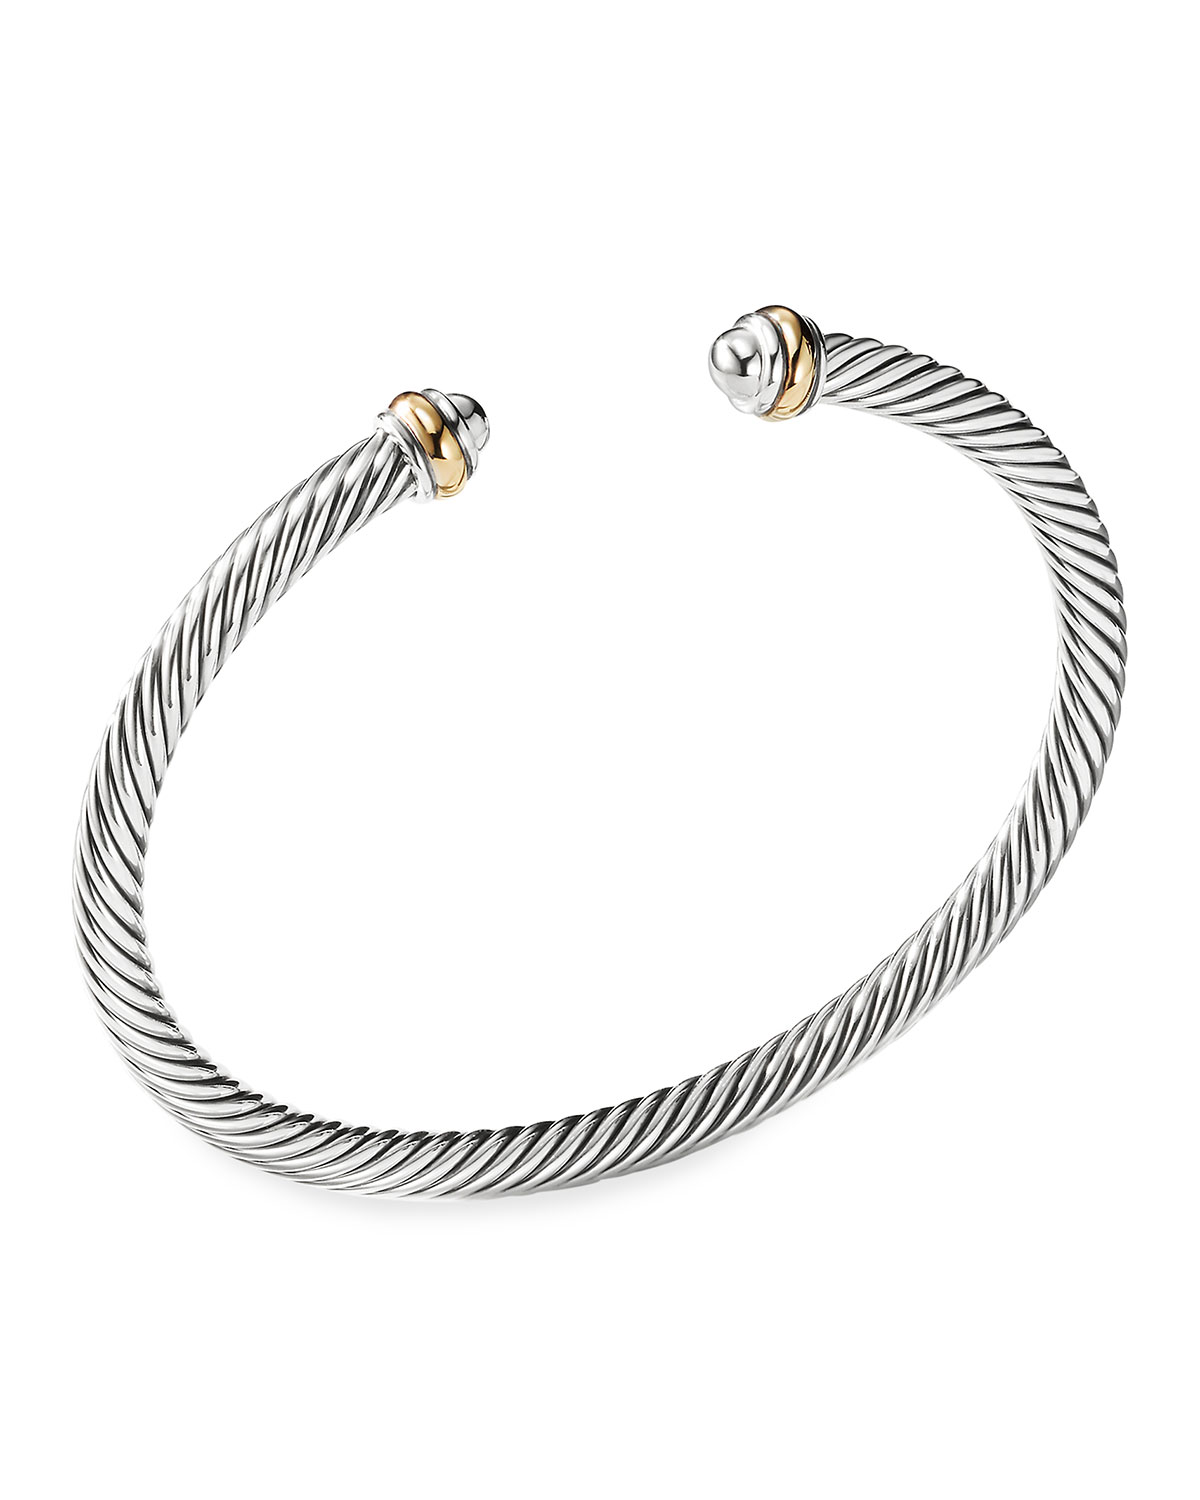 Cable Clics Bracelet With Gold